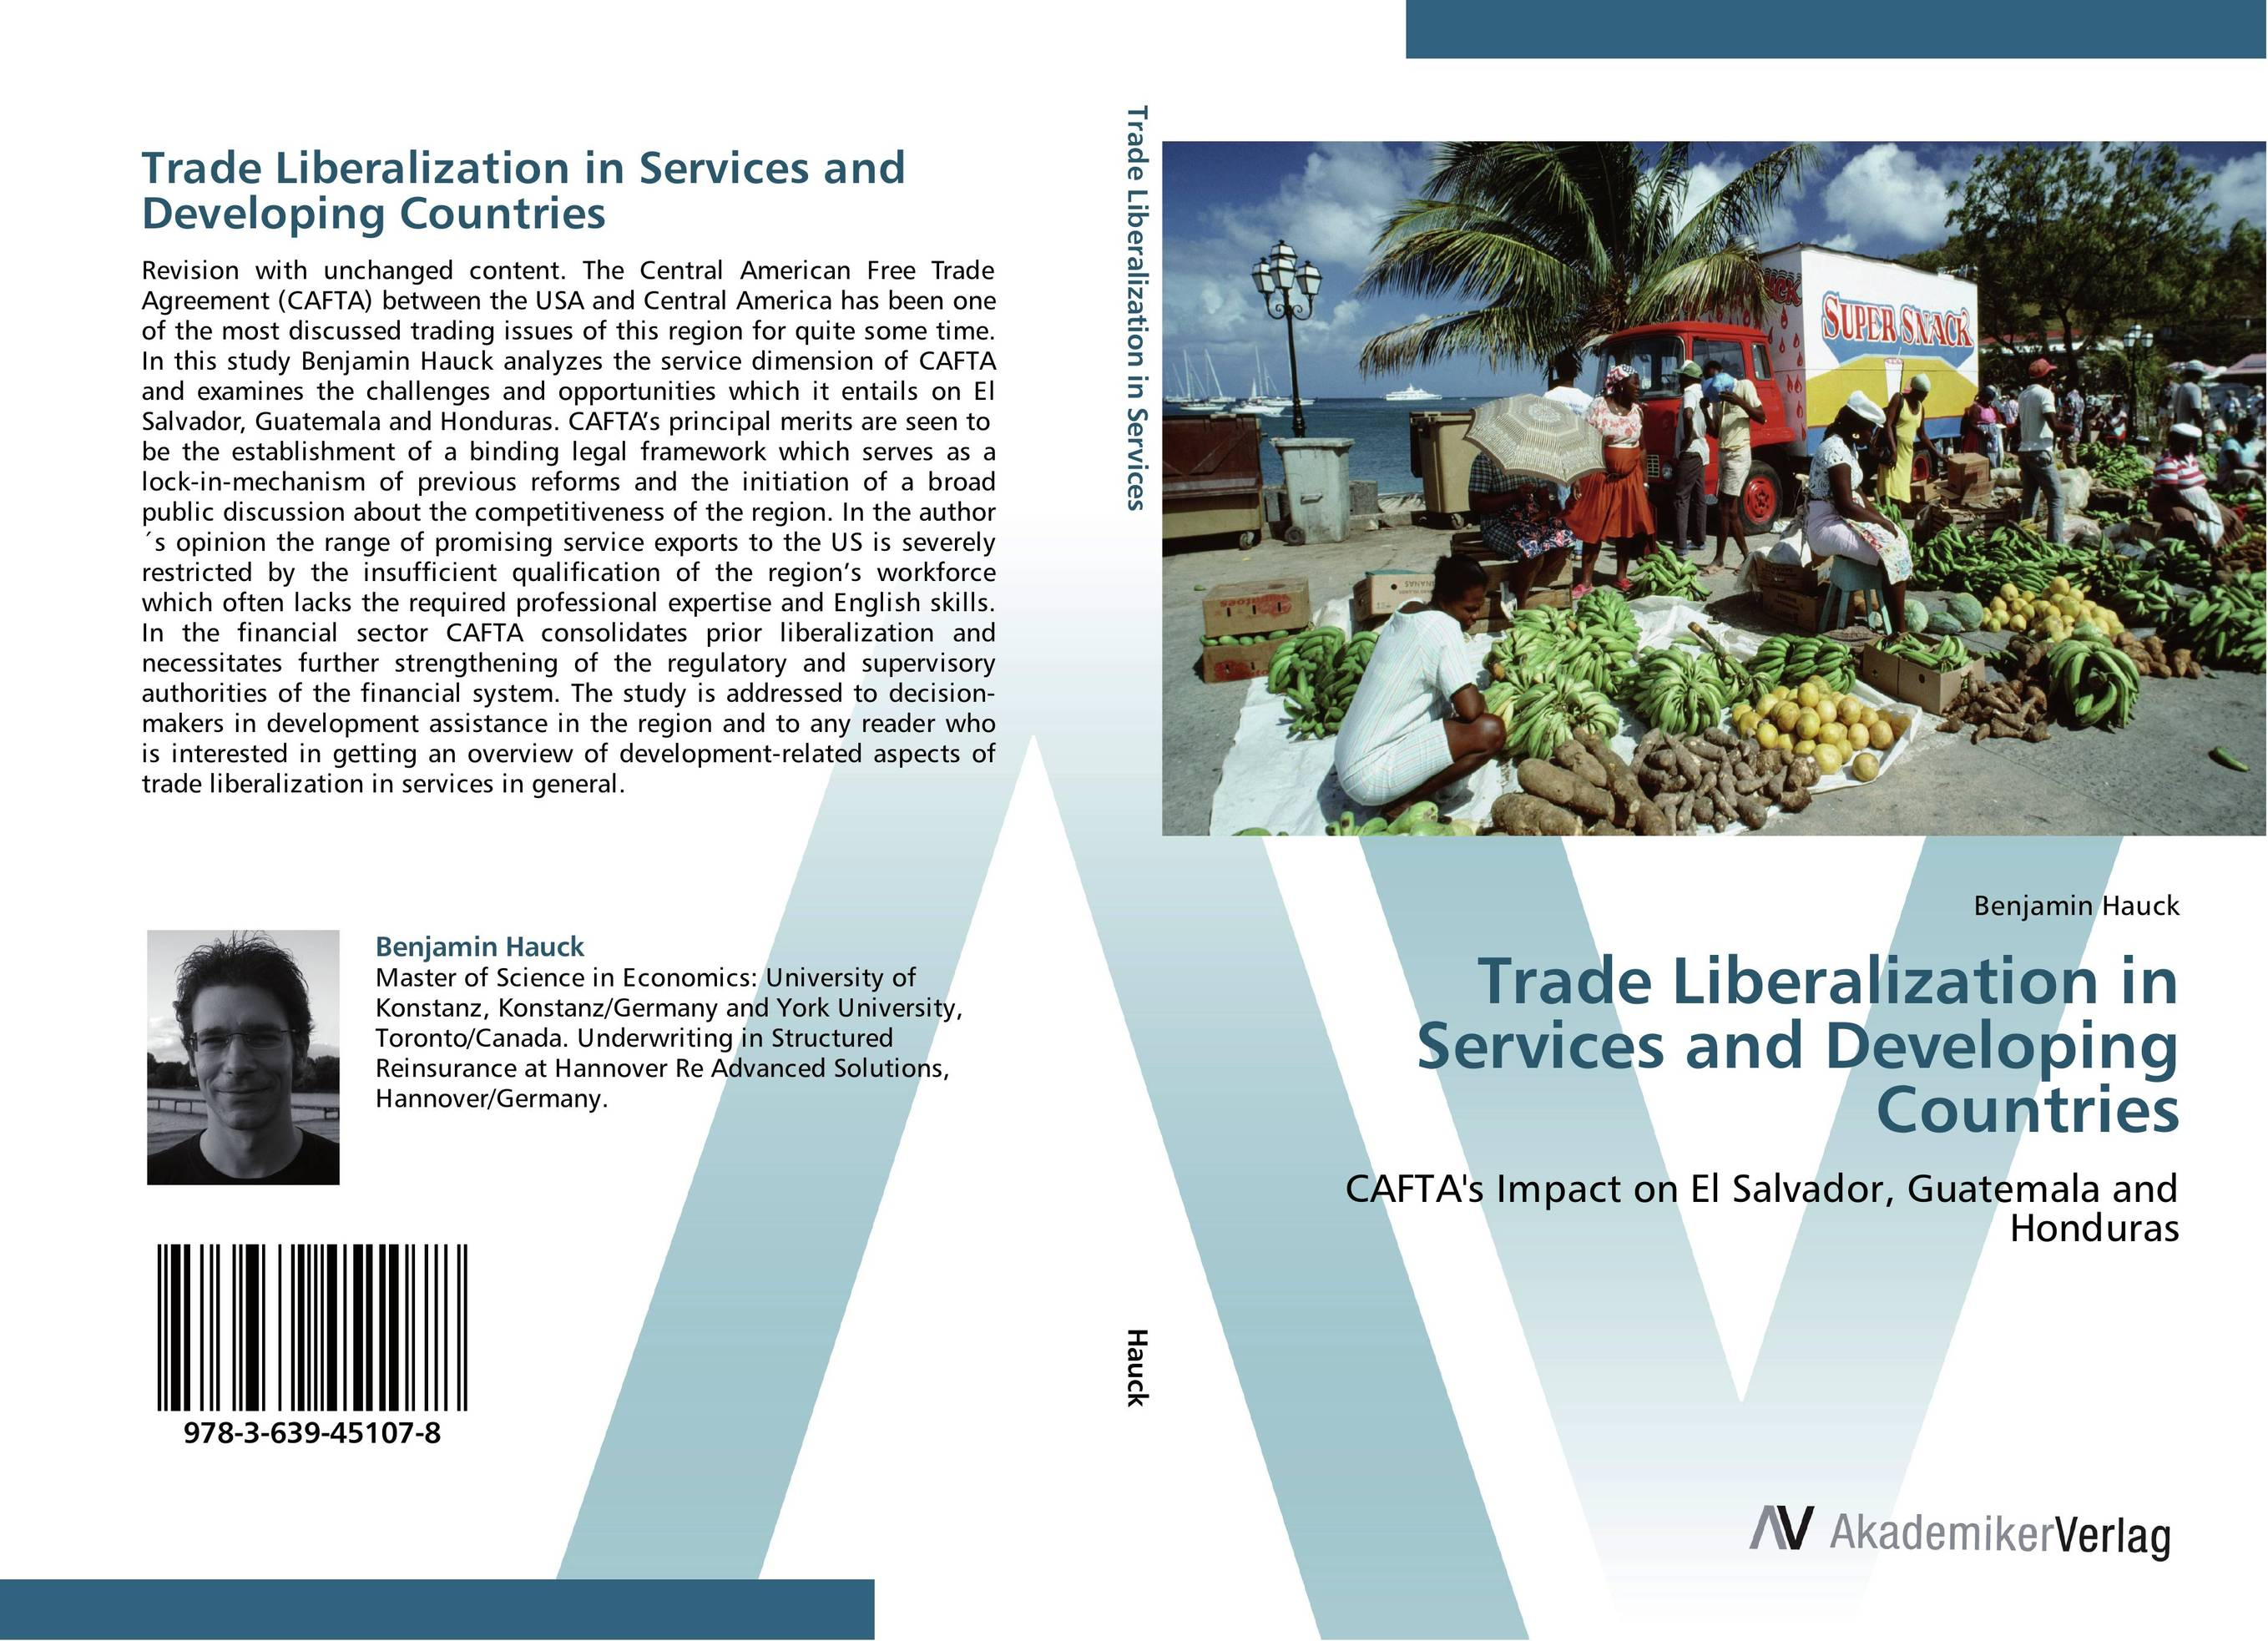 Trade Liberalization in Services and Developing Countries